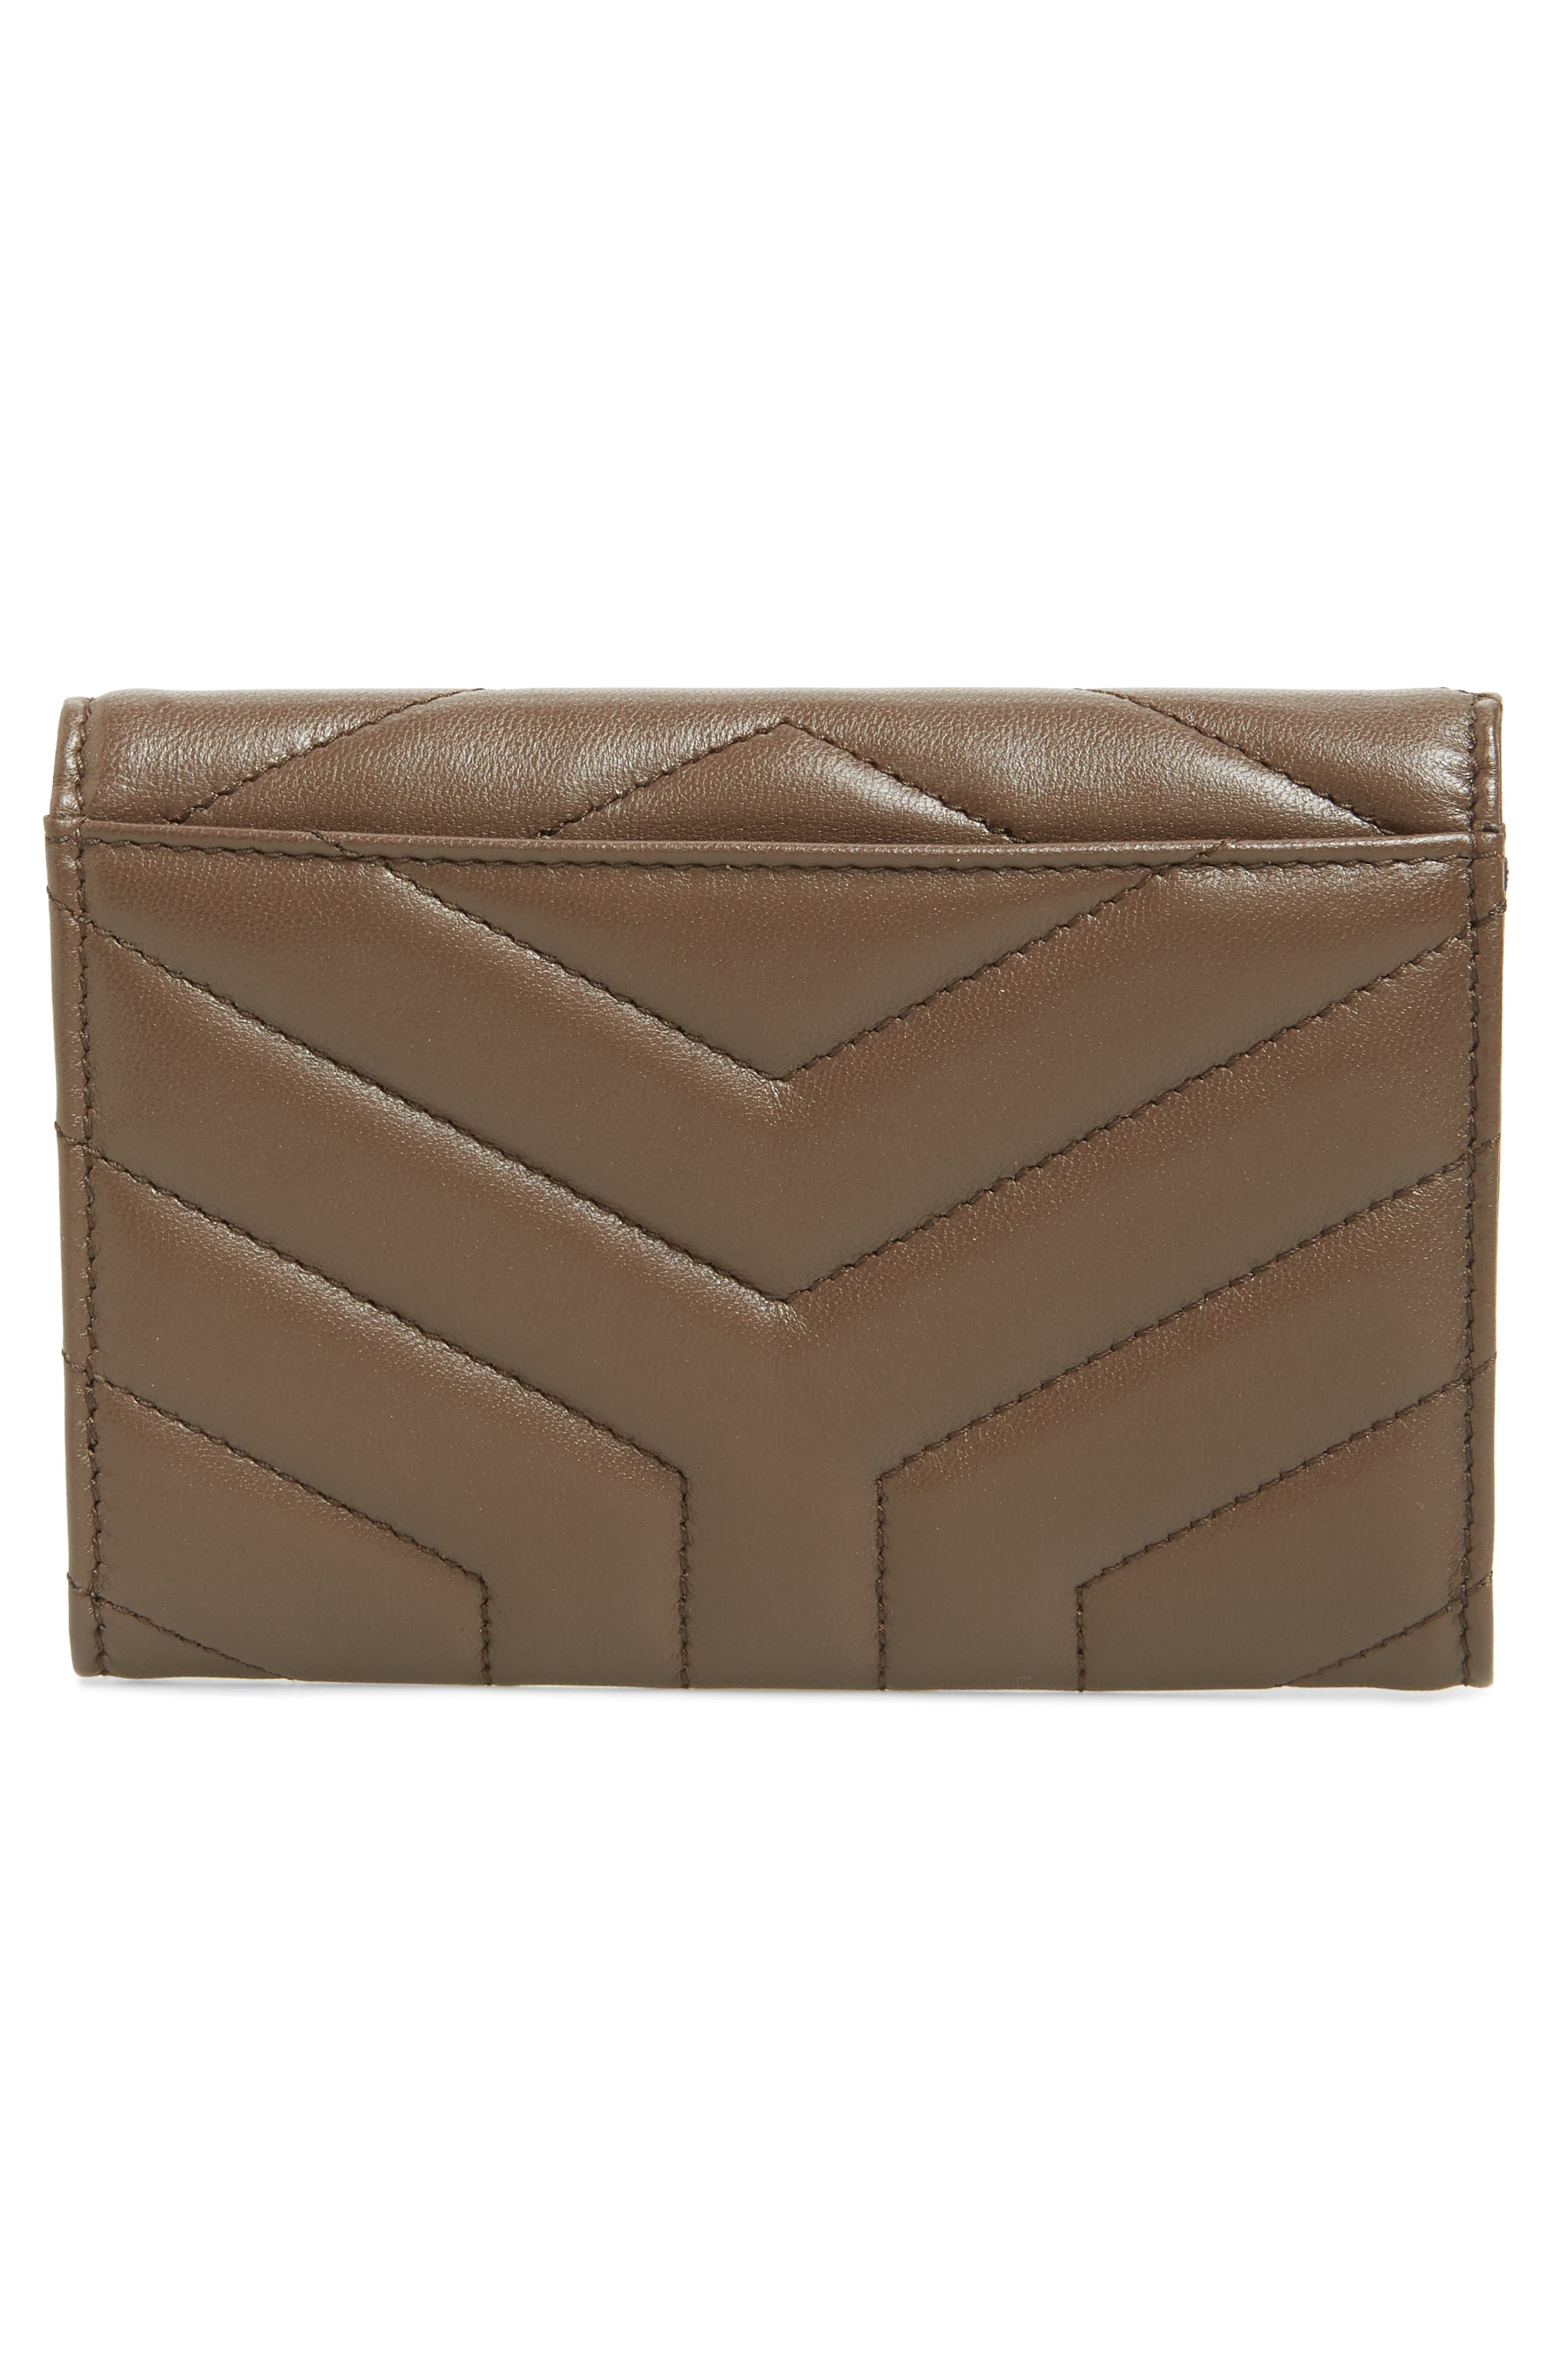 Small Loulou Matelassé Leather Wallet,                             Alternate thumbnail 4, color,                             FAGGIO